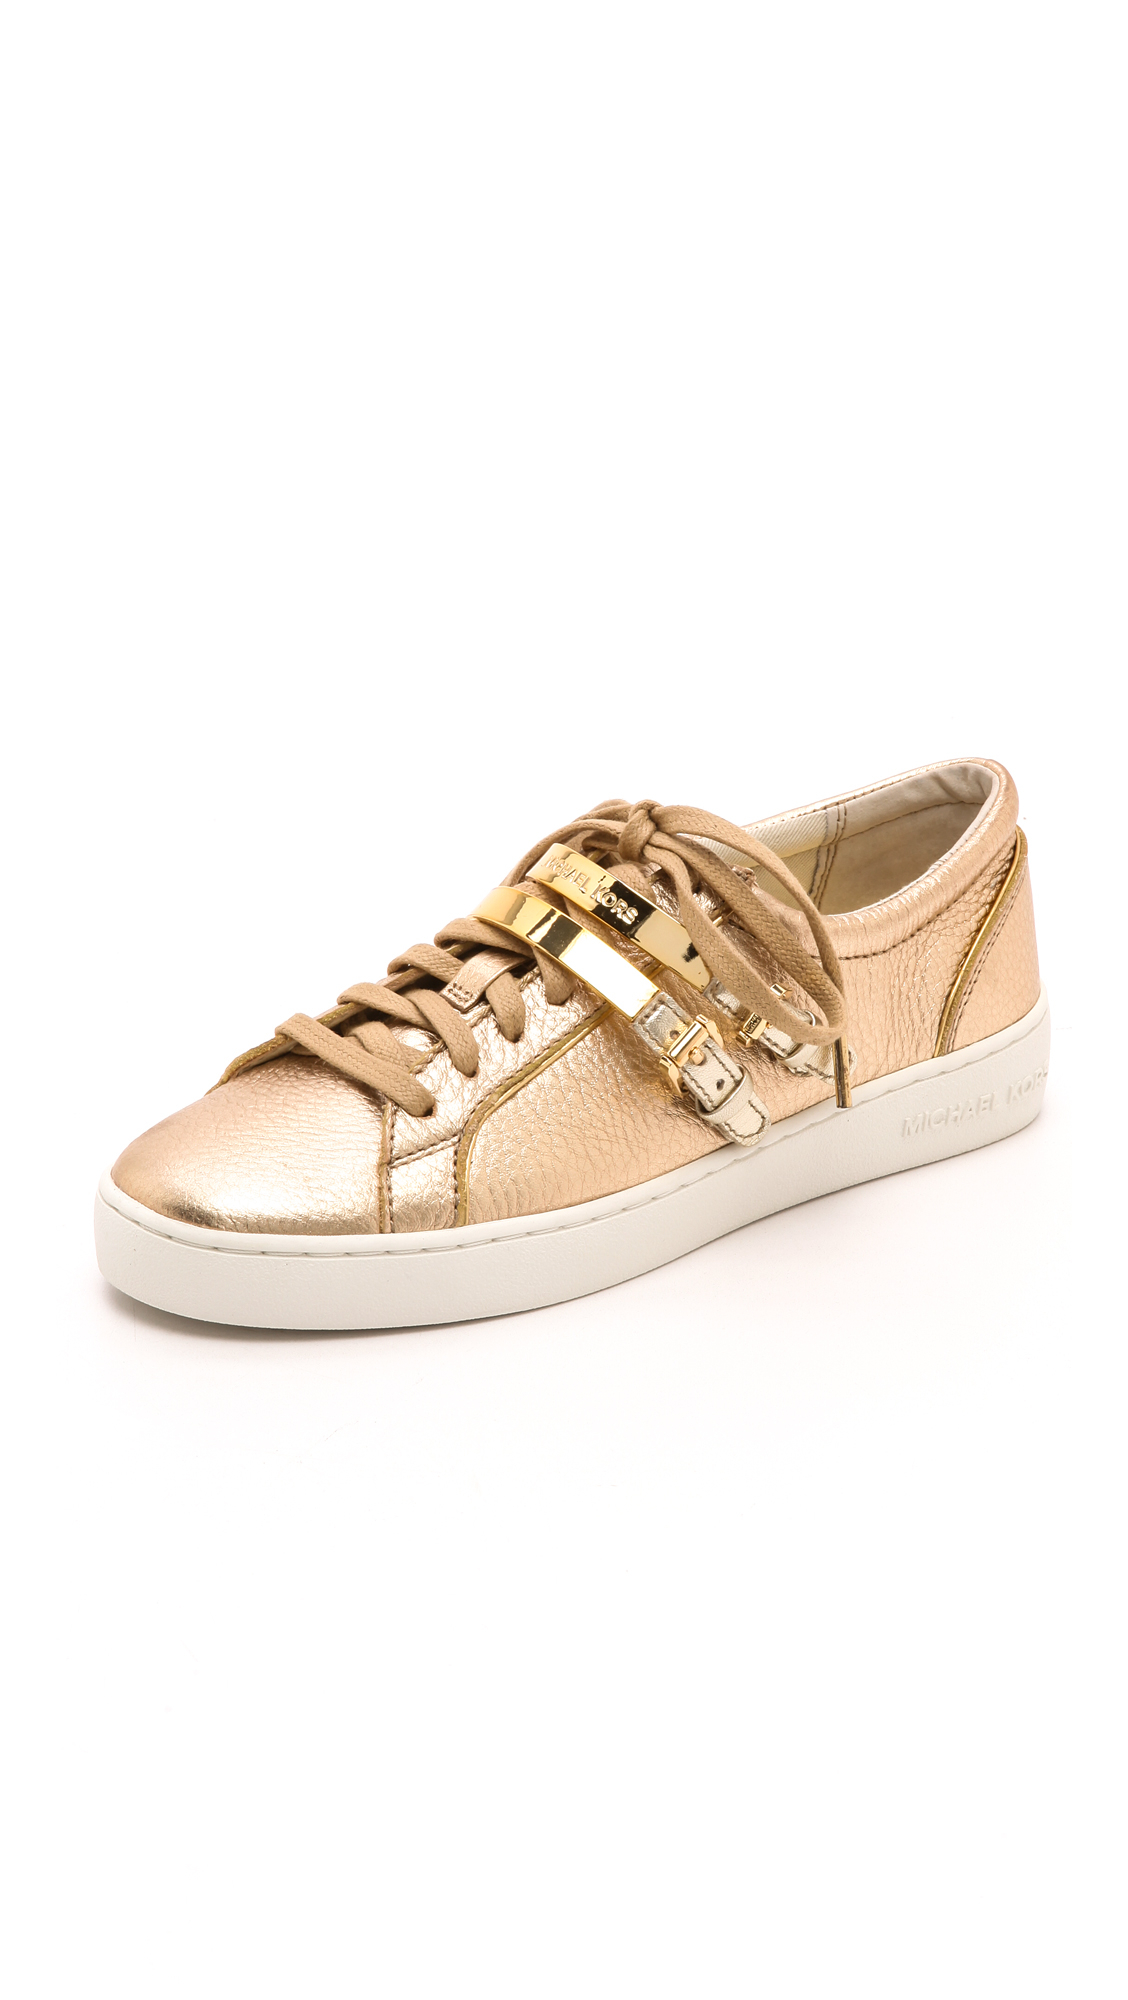 michael michael kors kimberly metallic sneakers pale gold in metallic lyst. Black Bedroom Furniture Sets. Home Design Ideas